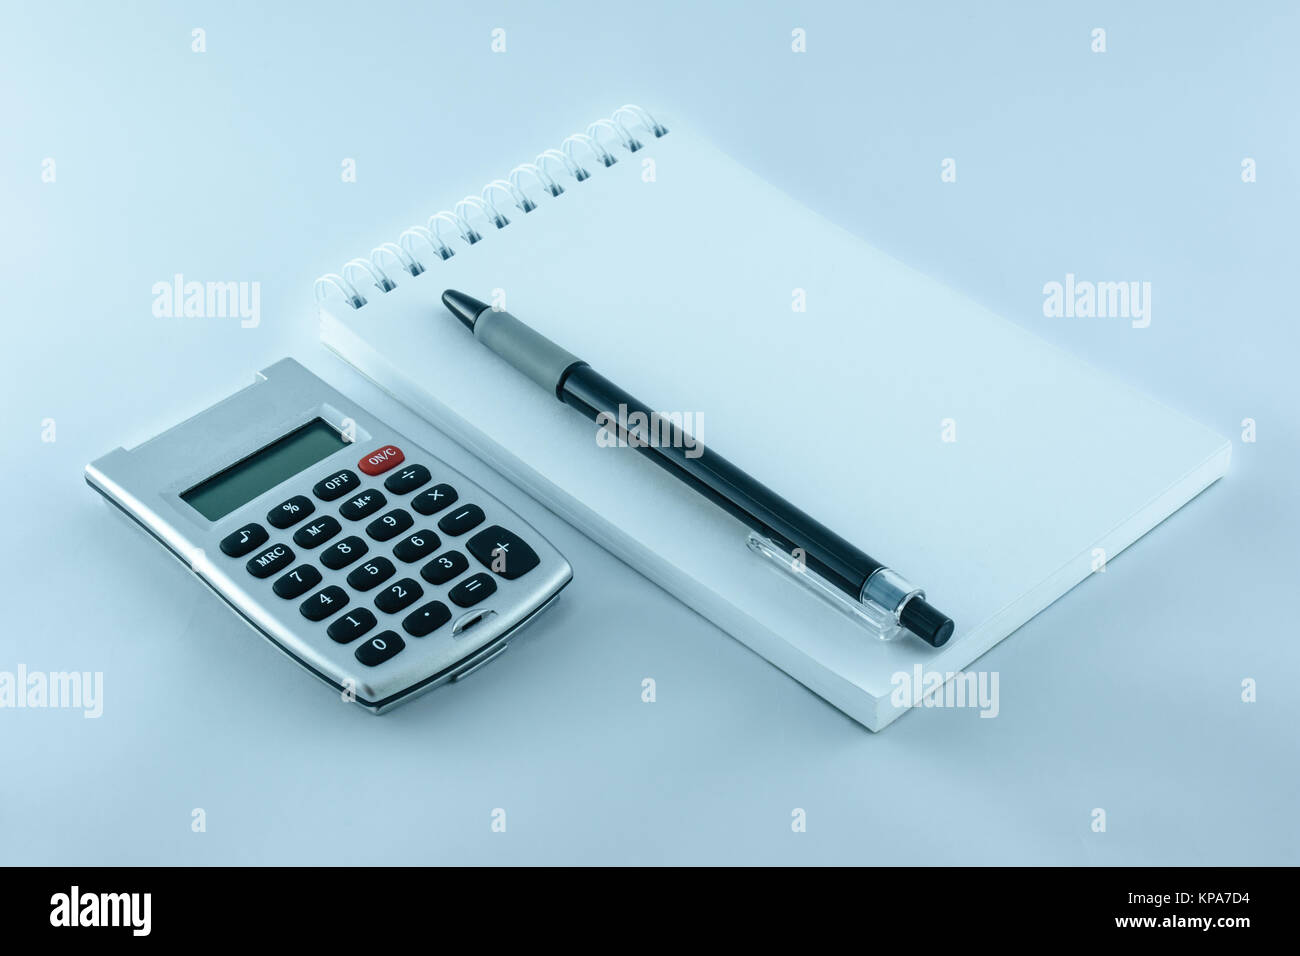 calculator, notepad and pen for your job - Stock Image